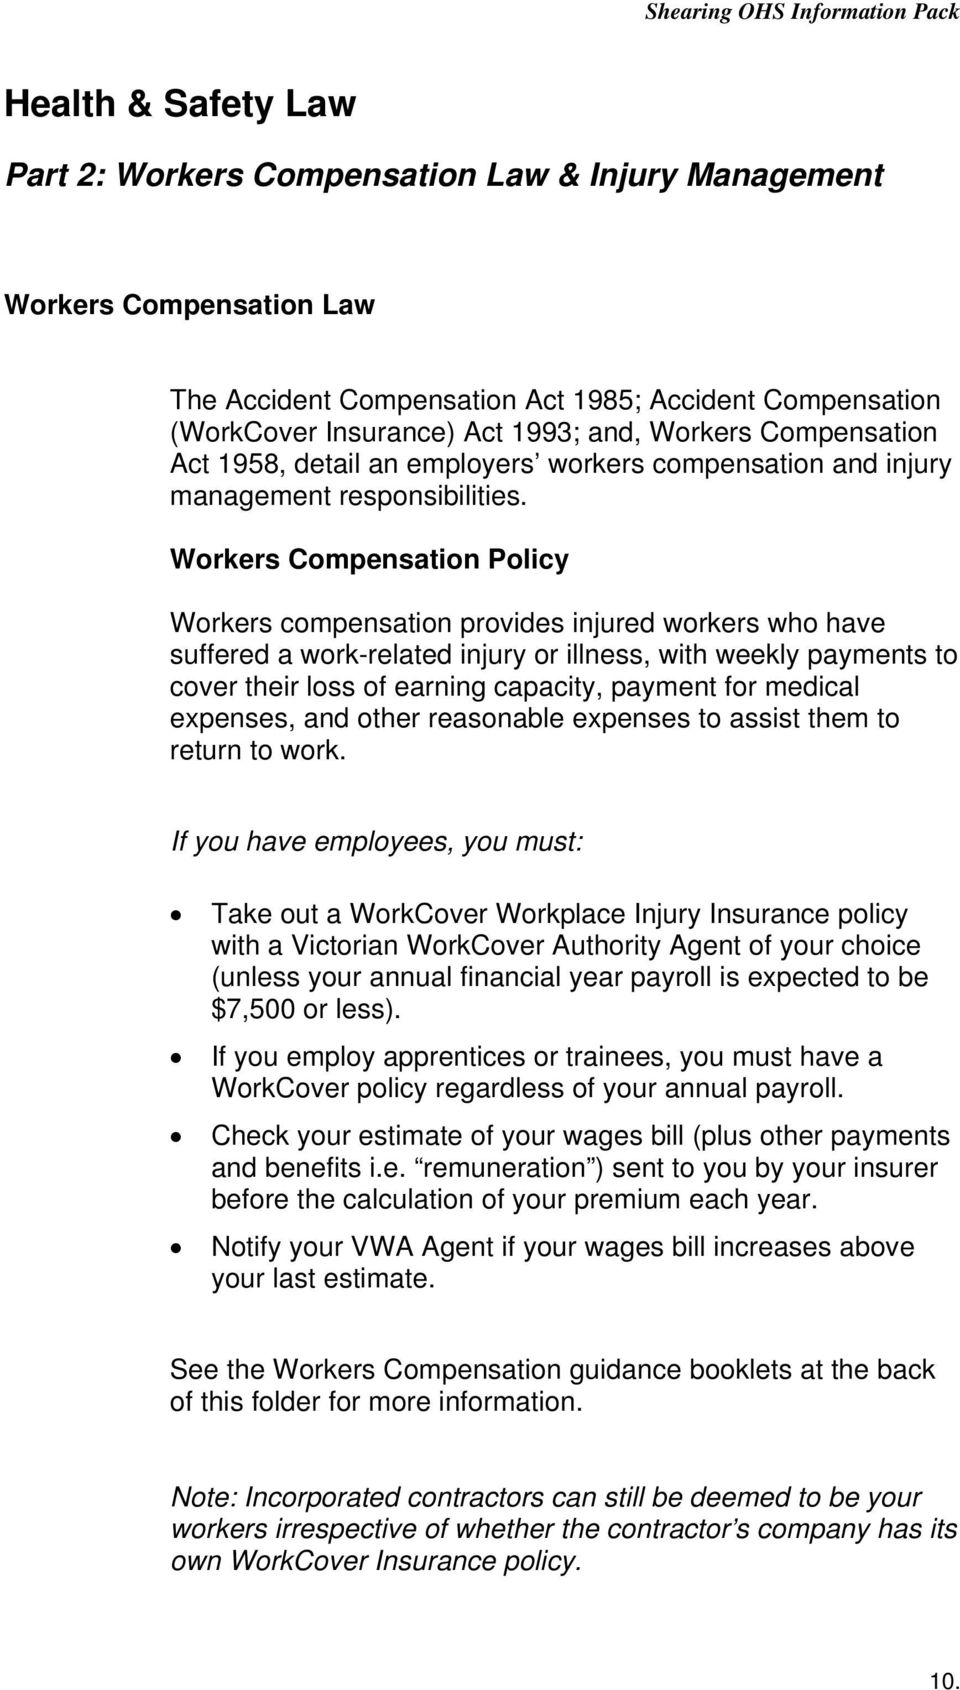 Workers Compensation Policy Workers compensation provides injured workers who have suffered a work-related injury or illness, with weekly payments to cover their loss of earning capacity, payment for